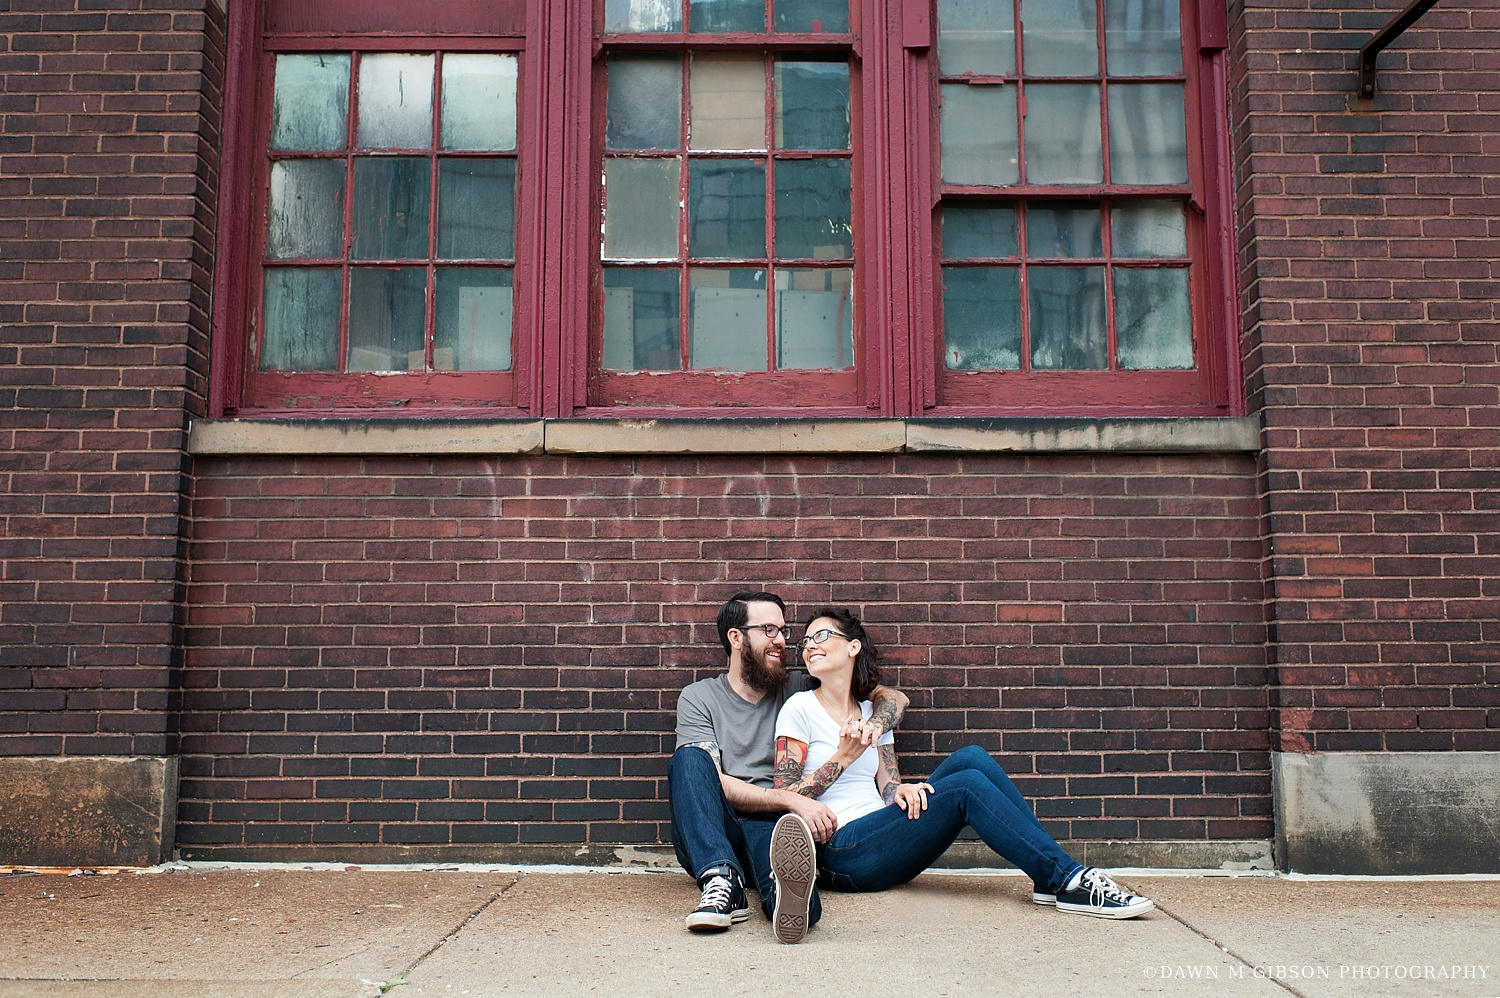 Carly + Phil rocked jeans, neutral t-shirts, and converse for their summer engagement session, allowing us to have a lot of fun in urban areas around Buffalo, NY for their summer engagement session.